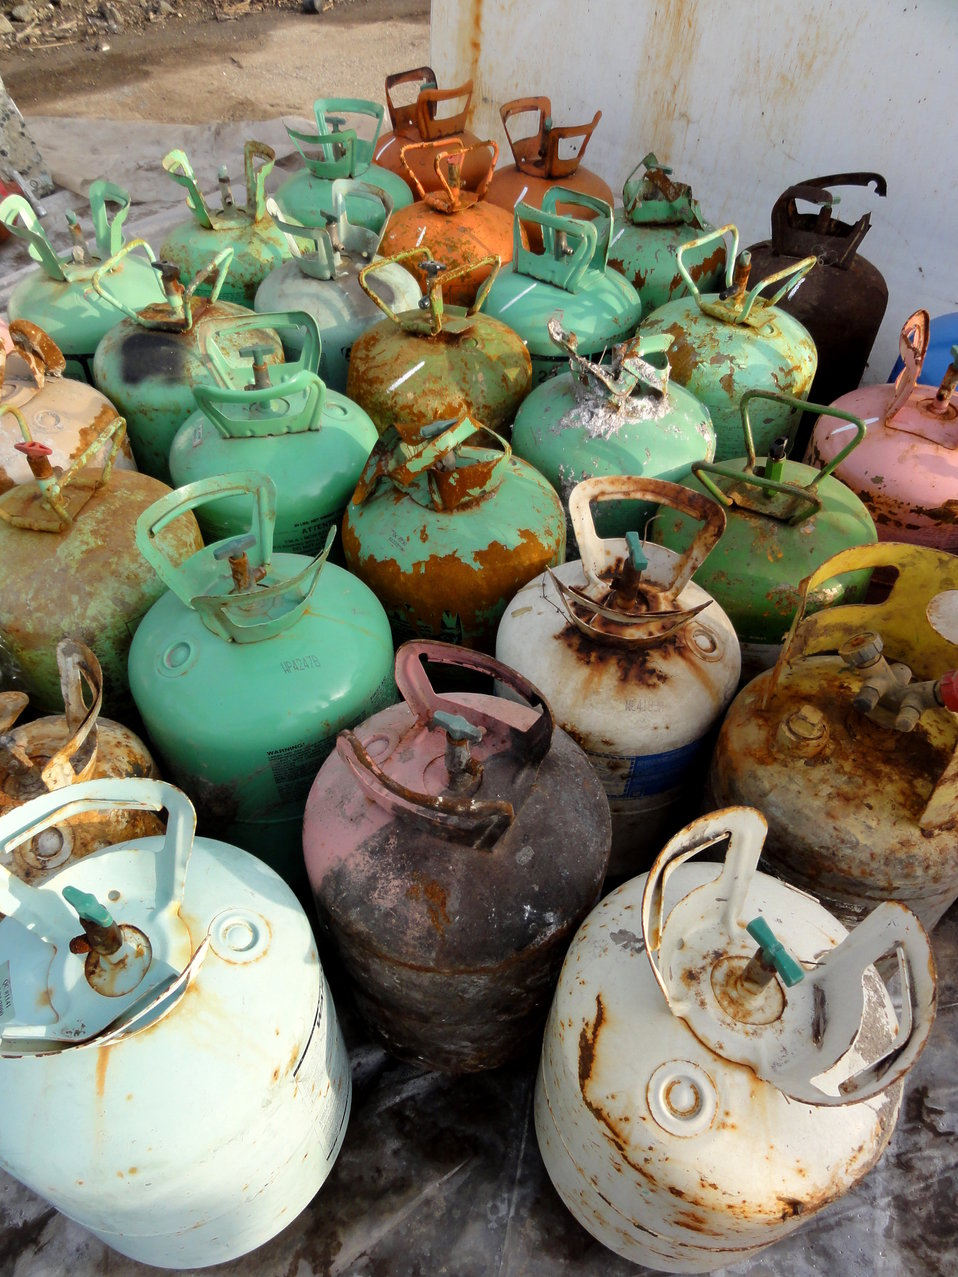 December 2, 2012 - Colorful Freon tanks, ready for recycling.